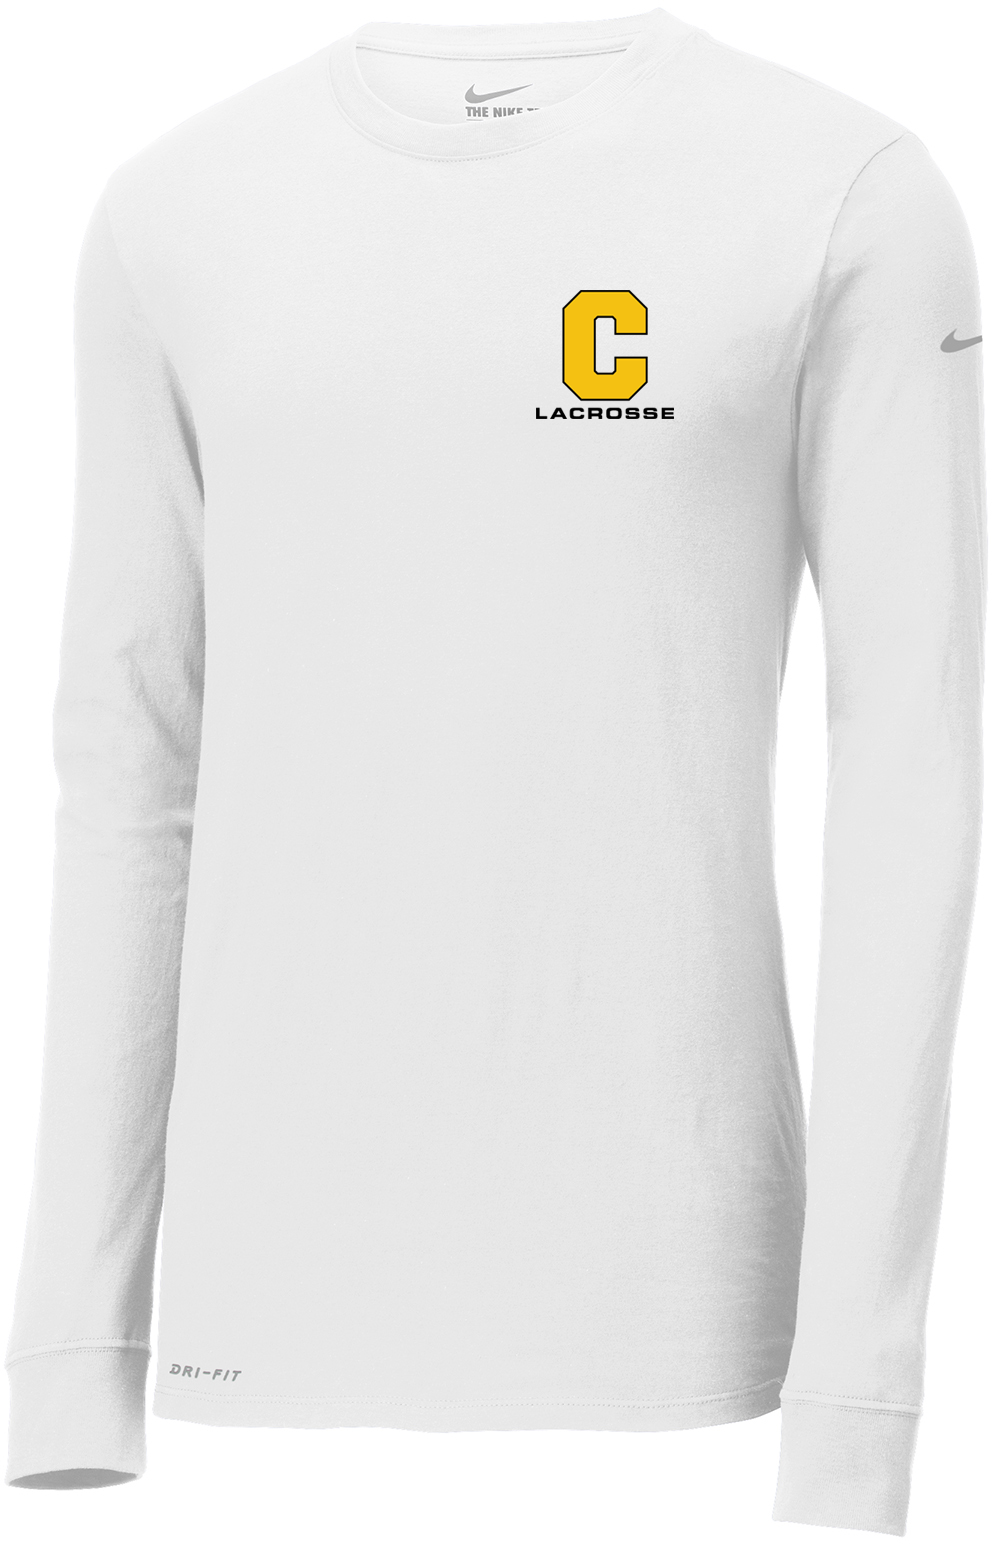 Commack Youth Lacrosse White Nike Dri-FIT Long Sleeve Tee